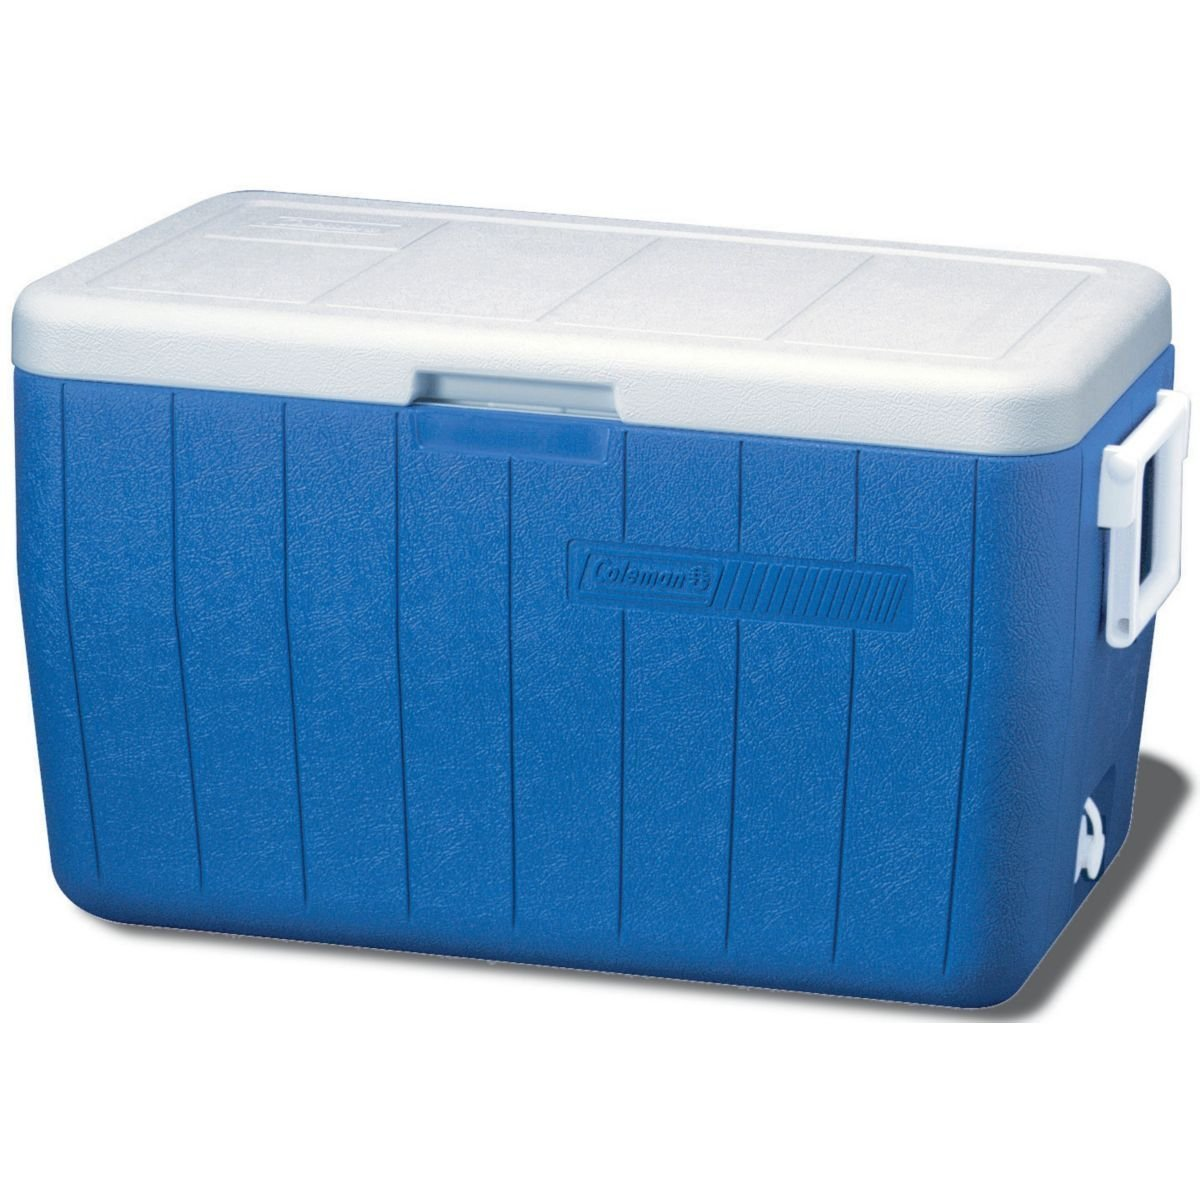 The Best Ice Chest Today: What To Get? 3